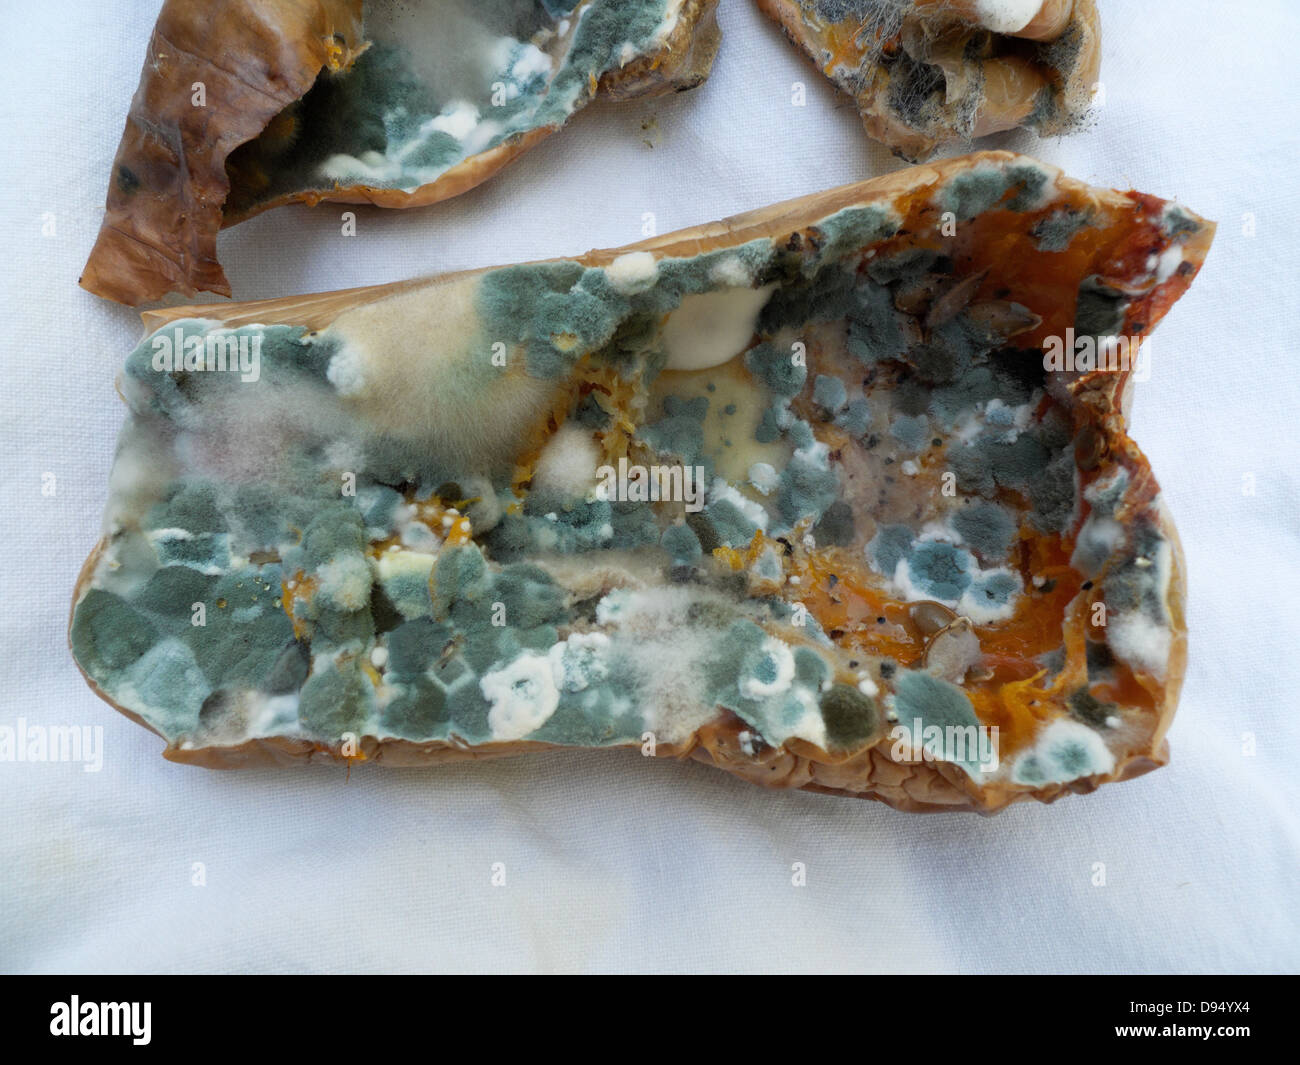 Mould fungus (Penicillium) growing on a baked neglected butternut squash a week after cooking Wales UK  KATHY DEWITT - Stock Image